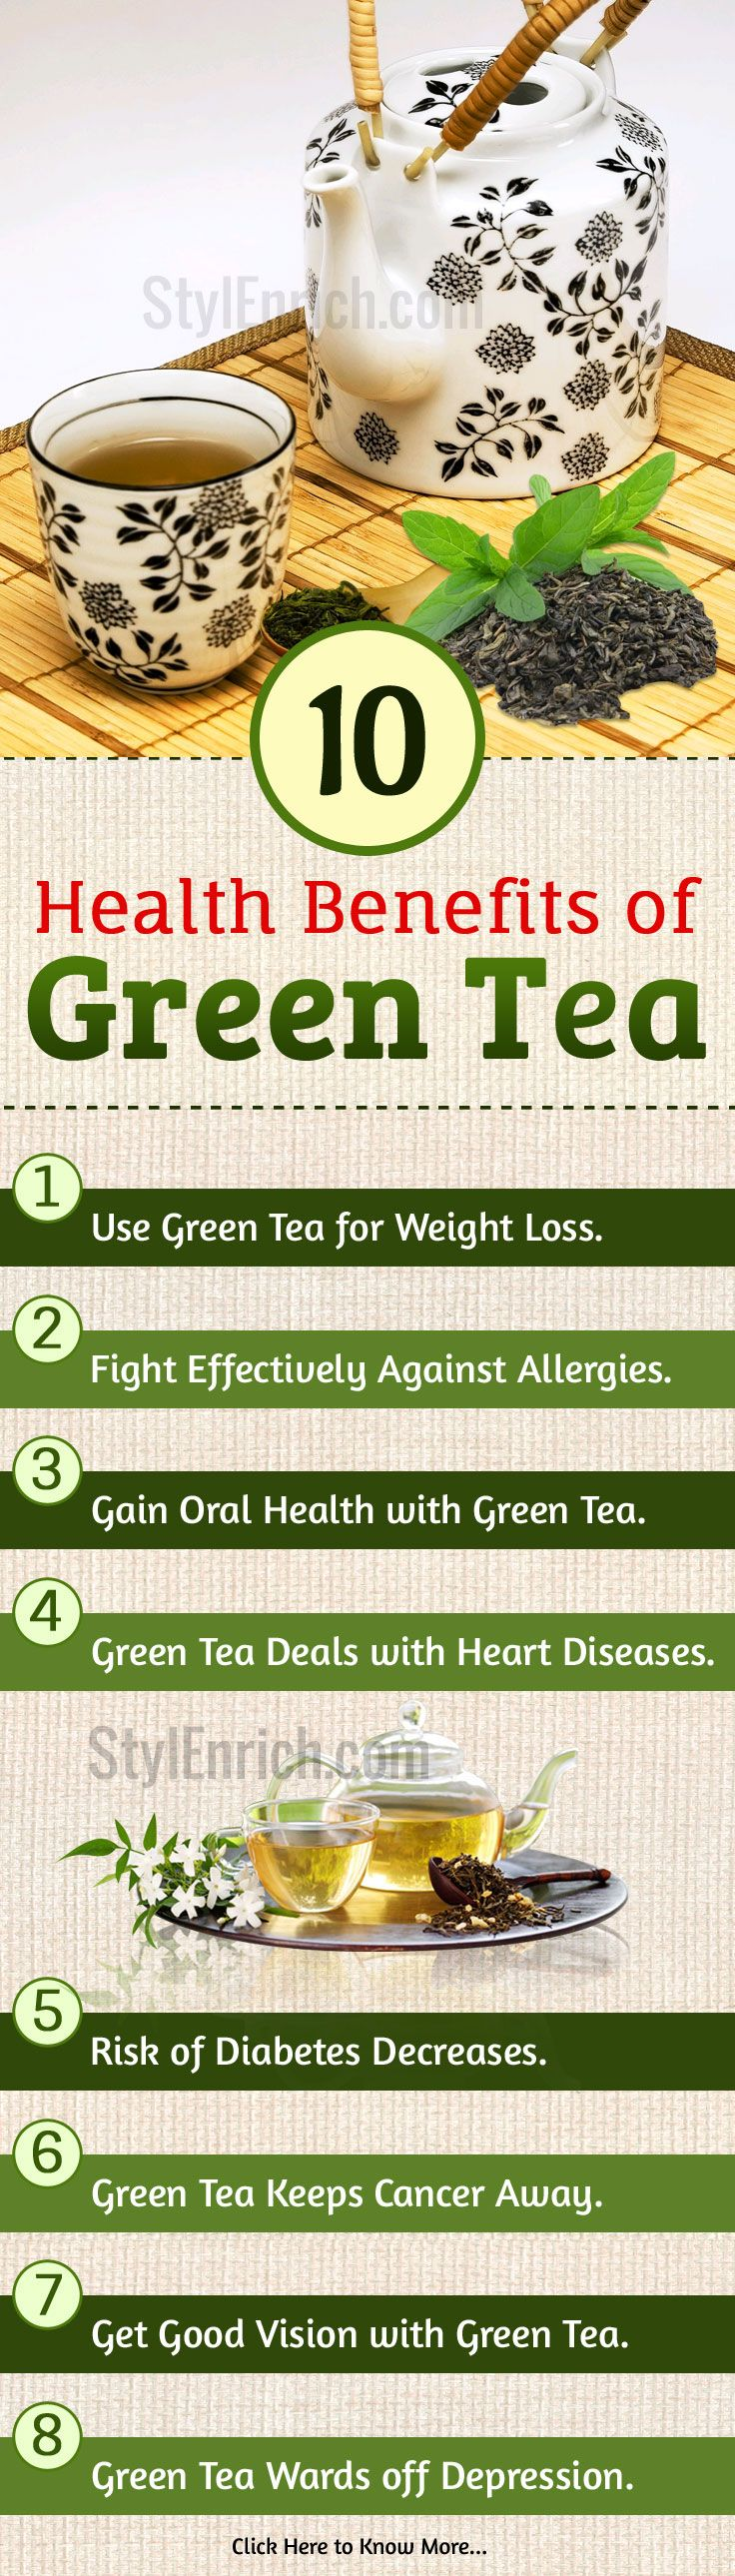 There are many #HealthBenefits of drinking #GreenTea that you can avail in your daily routine. For your help, we are providing top 10 green tea health benefits that you must know! Just include this wonderful beverage in your daily diet and watch it working wonders for your overall health.